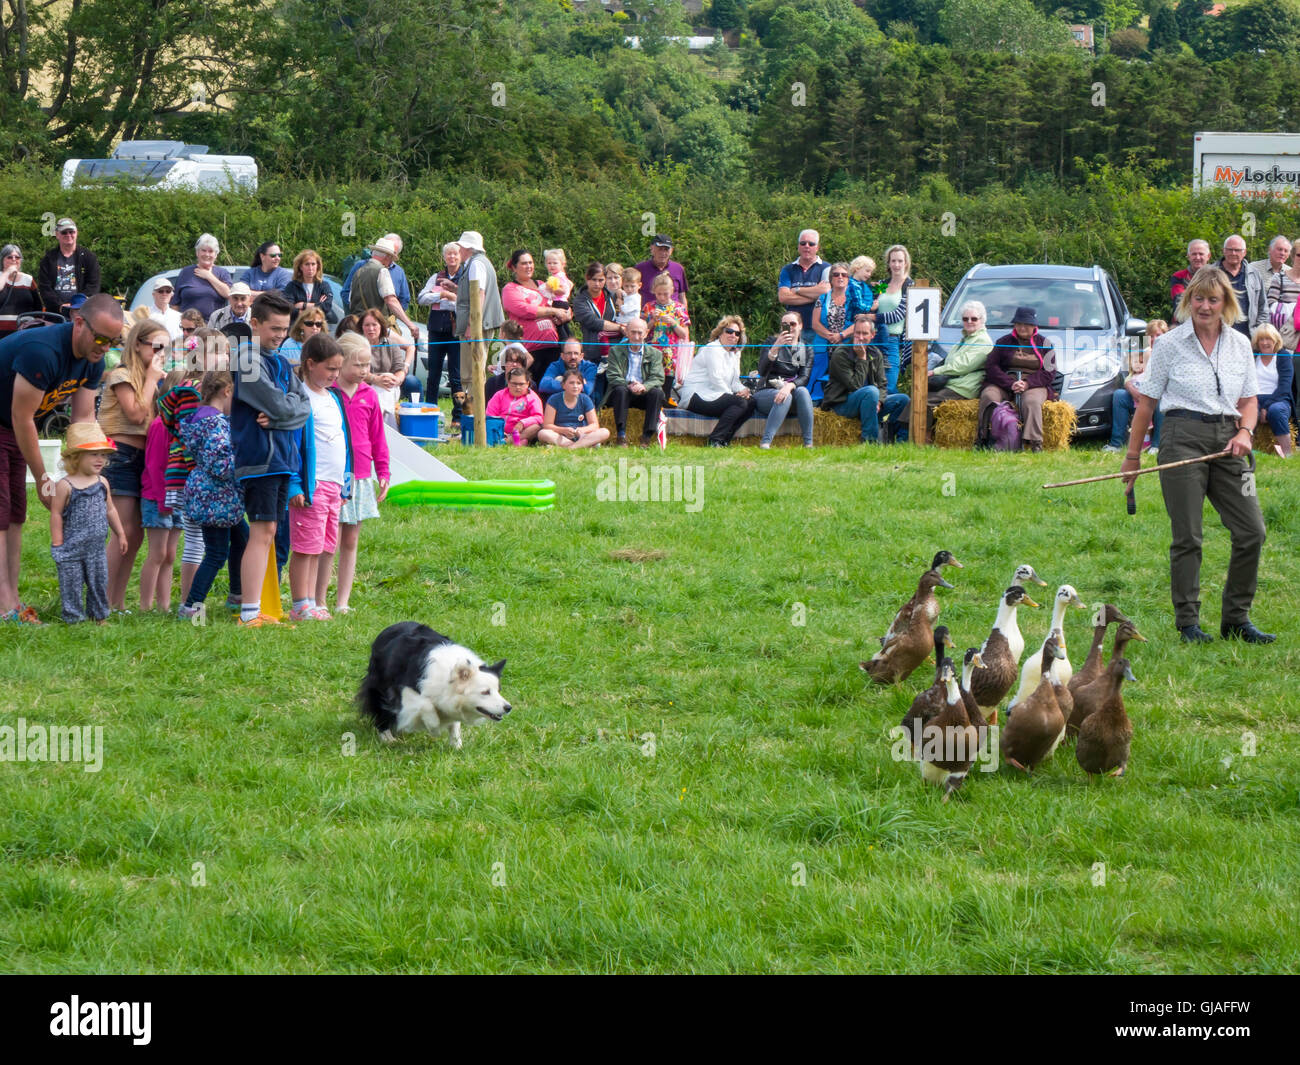 At an Agricultural Show in North Yorkshire The Elaine Hill Sheep Dod Display with a shepherdess and collie dogs - Stock Image